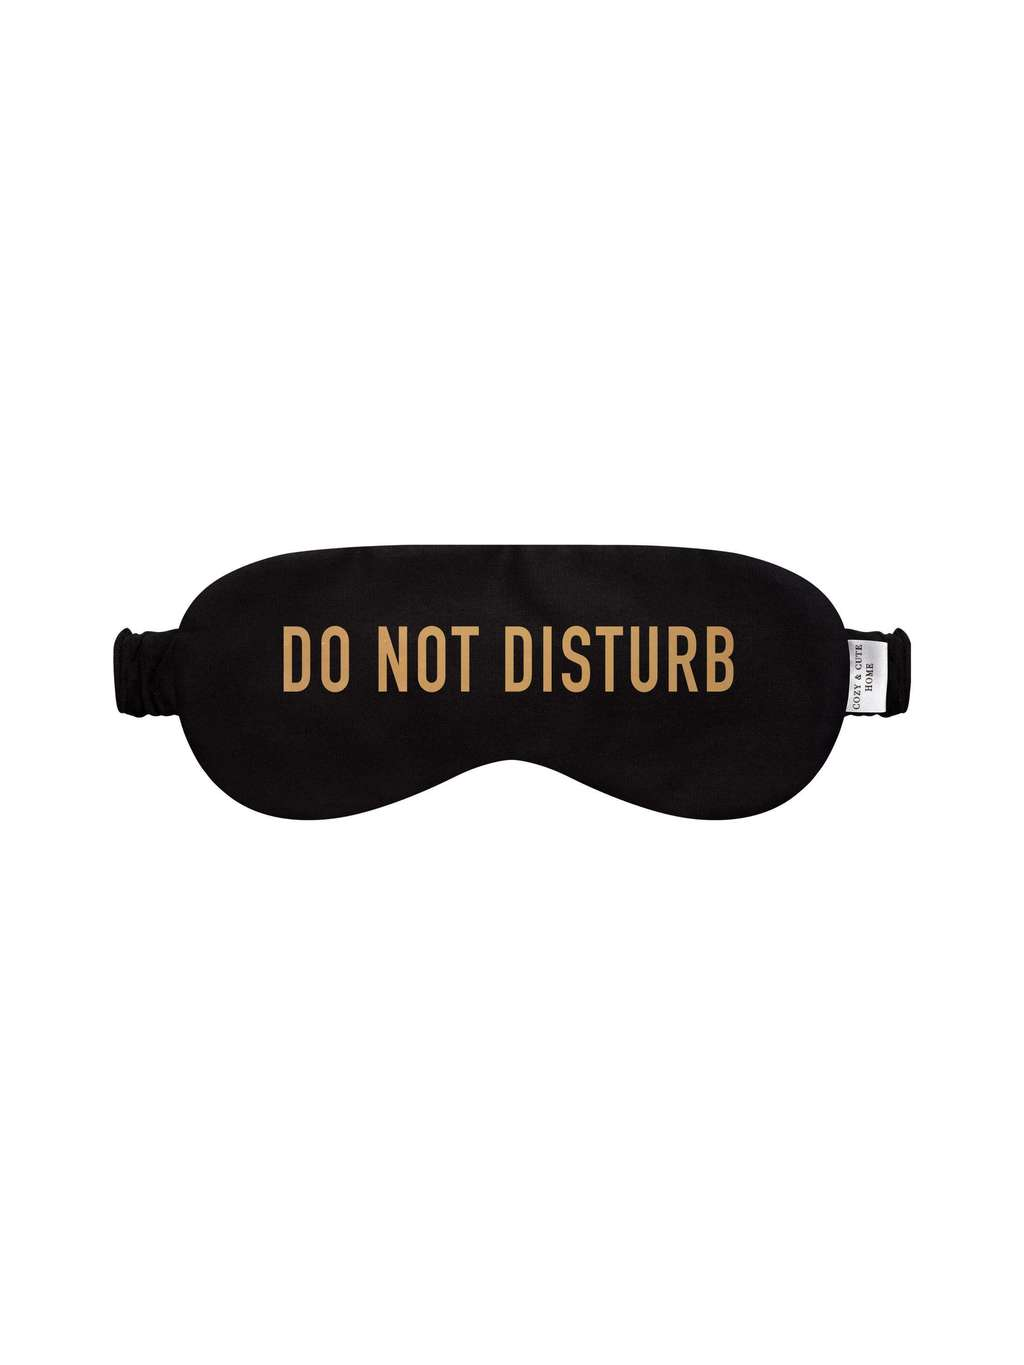 "Маска для сна ""Do not disturb"" черная"